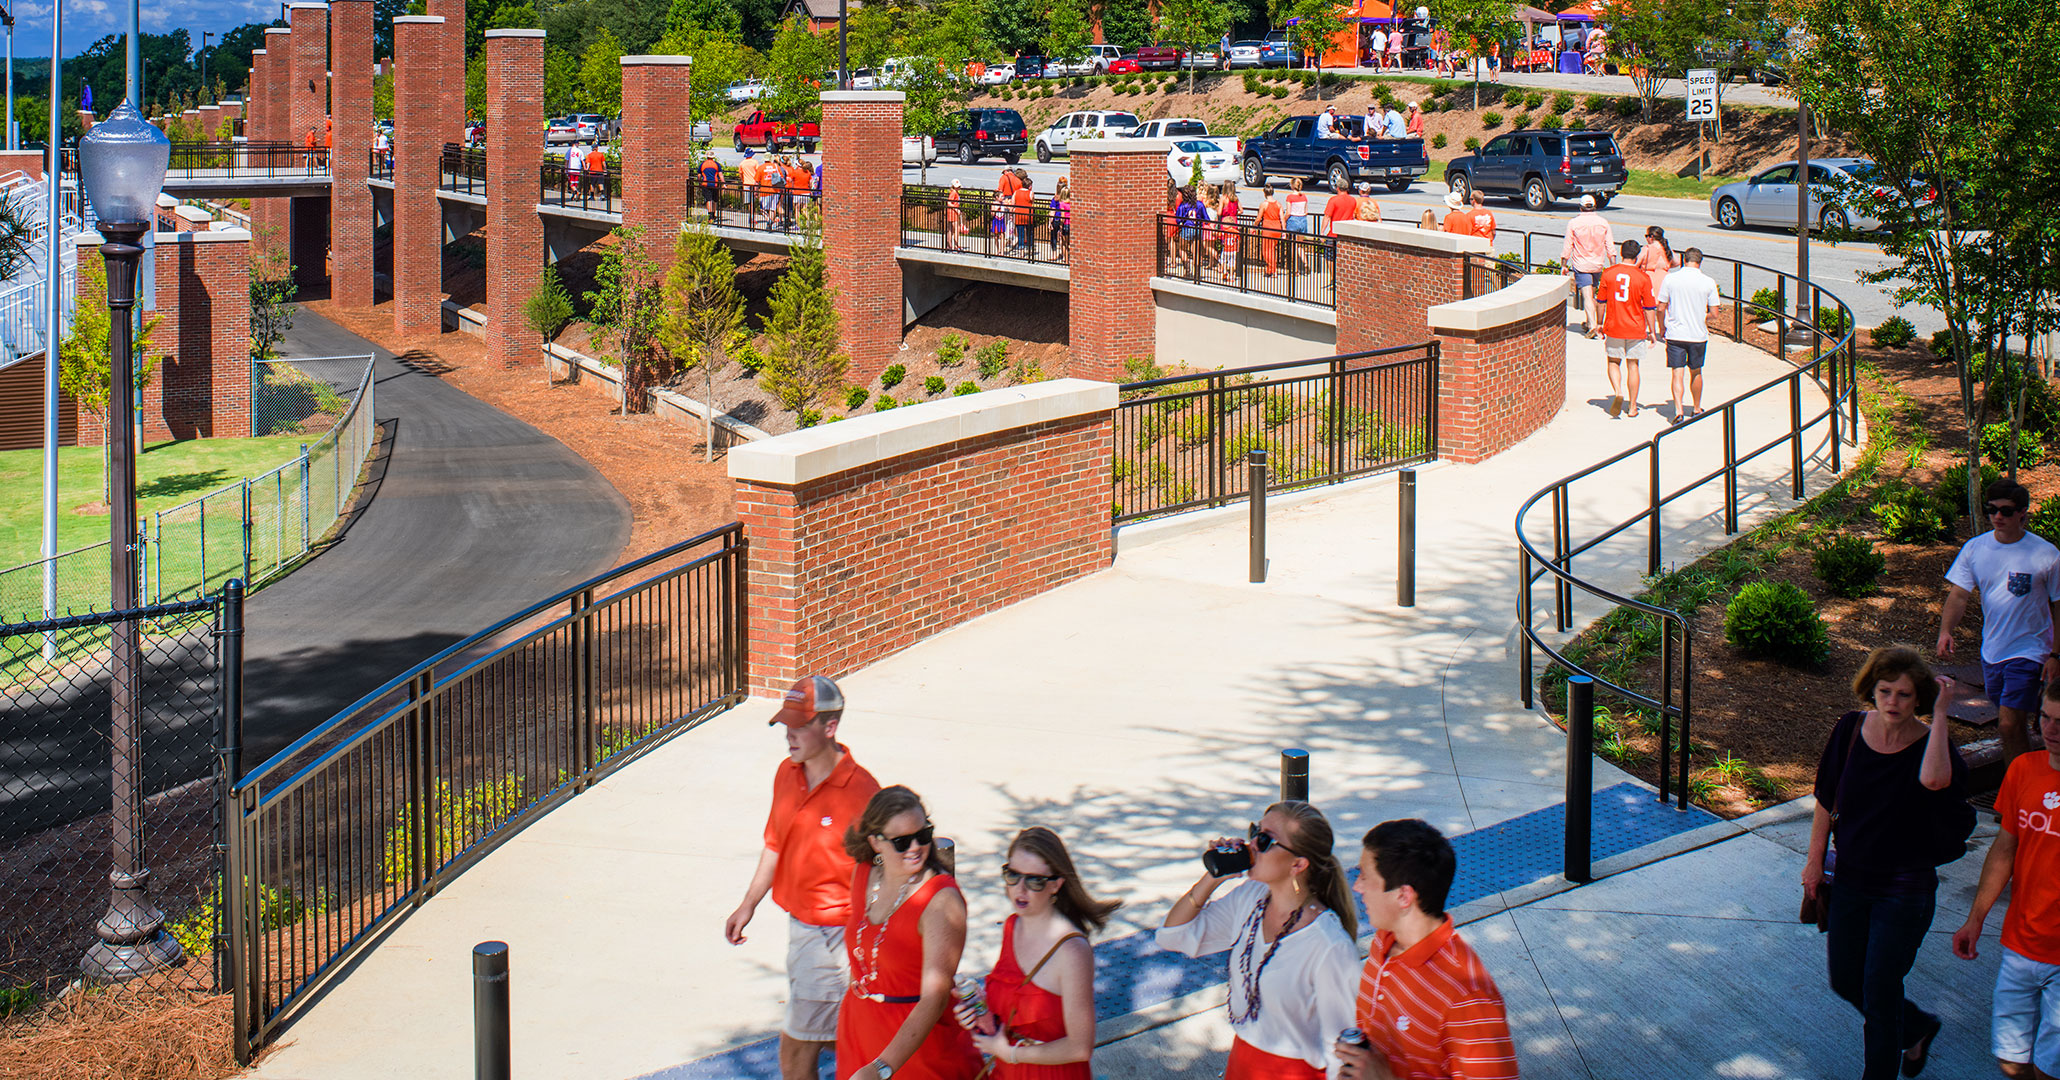 Clemson University worked with Boudreaux master planners and designers to improve pedestrian traffic building the pedestrian walkway past the famous Memorial Stadium.